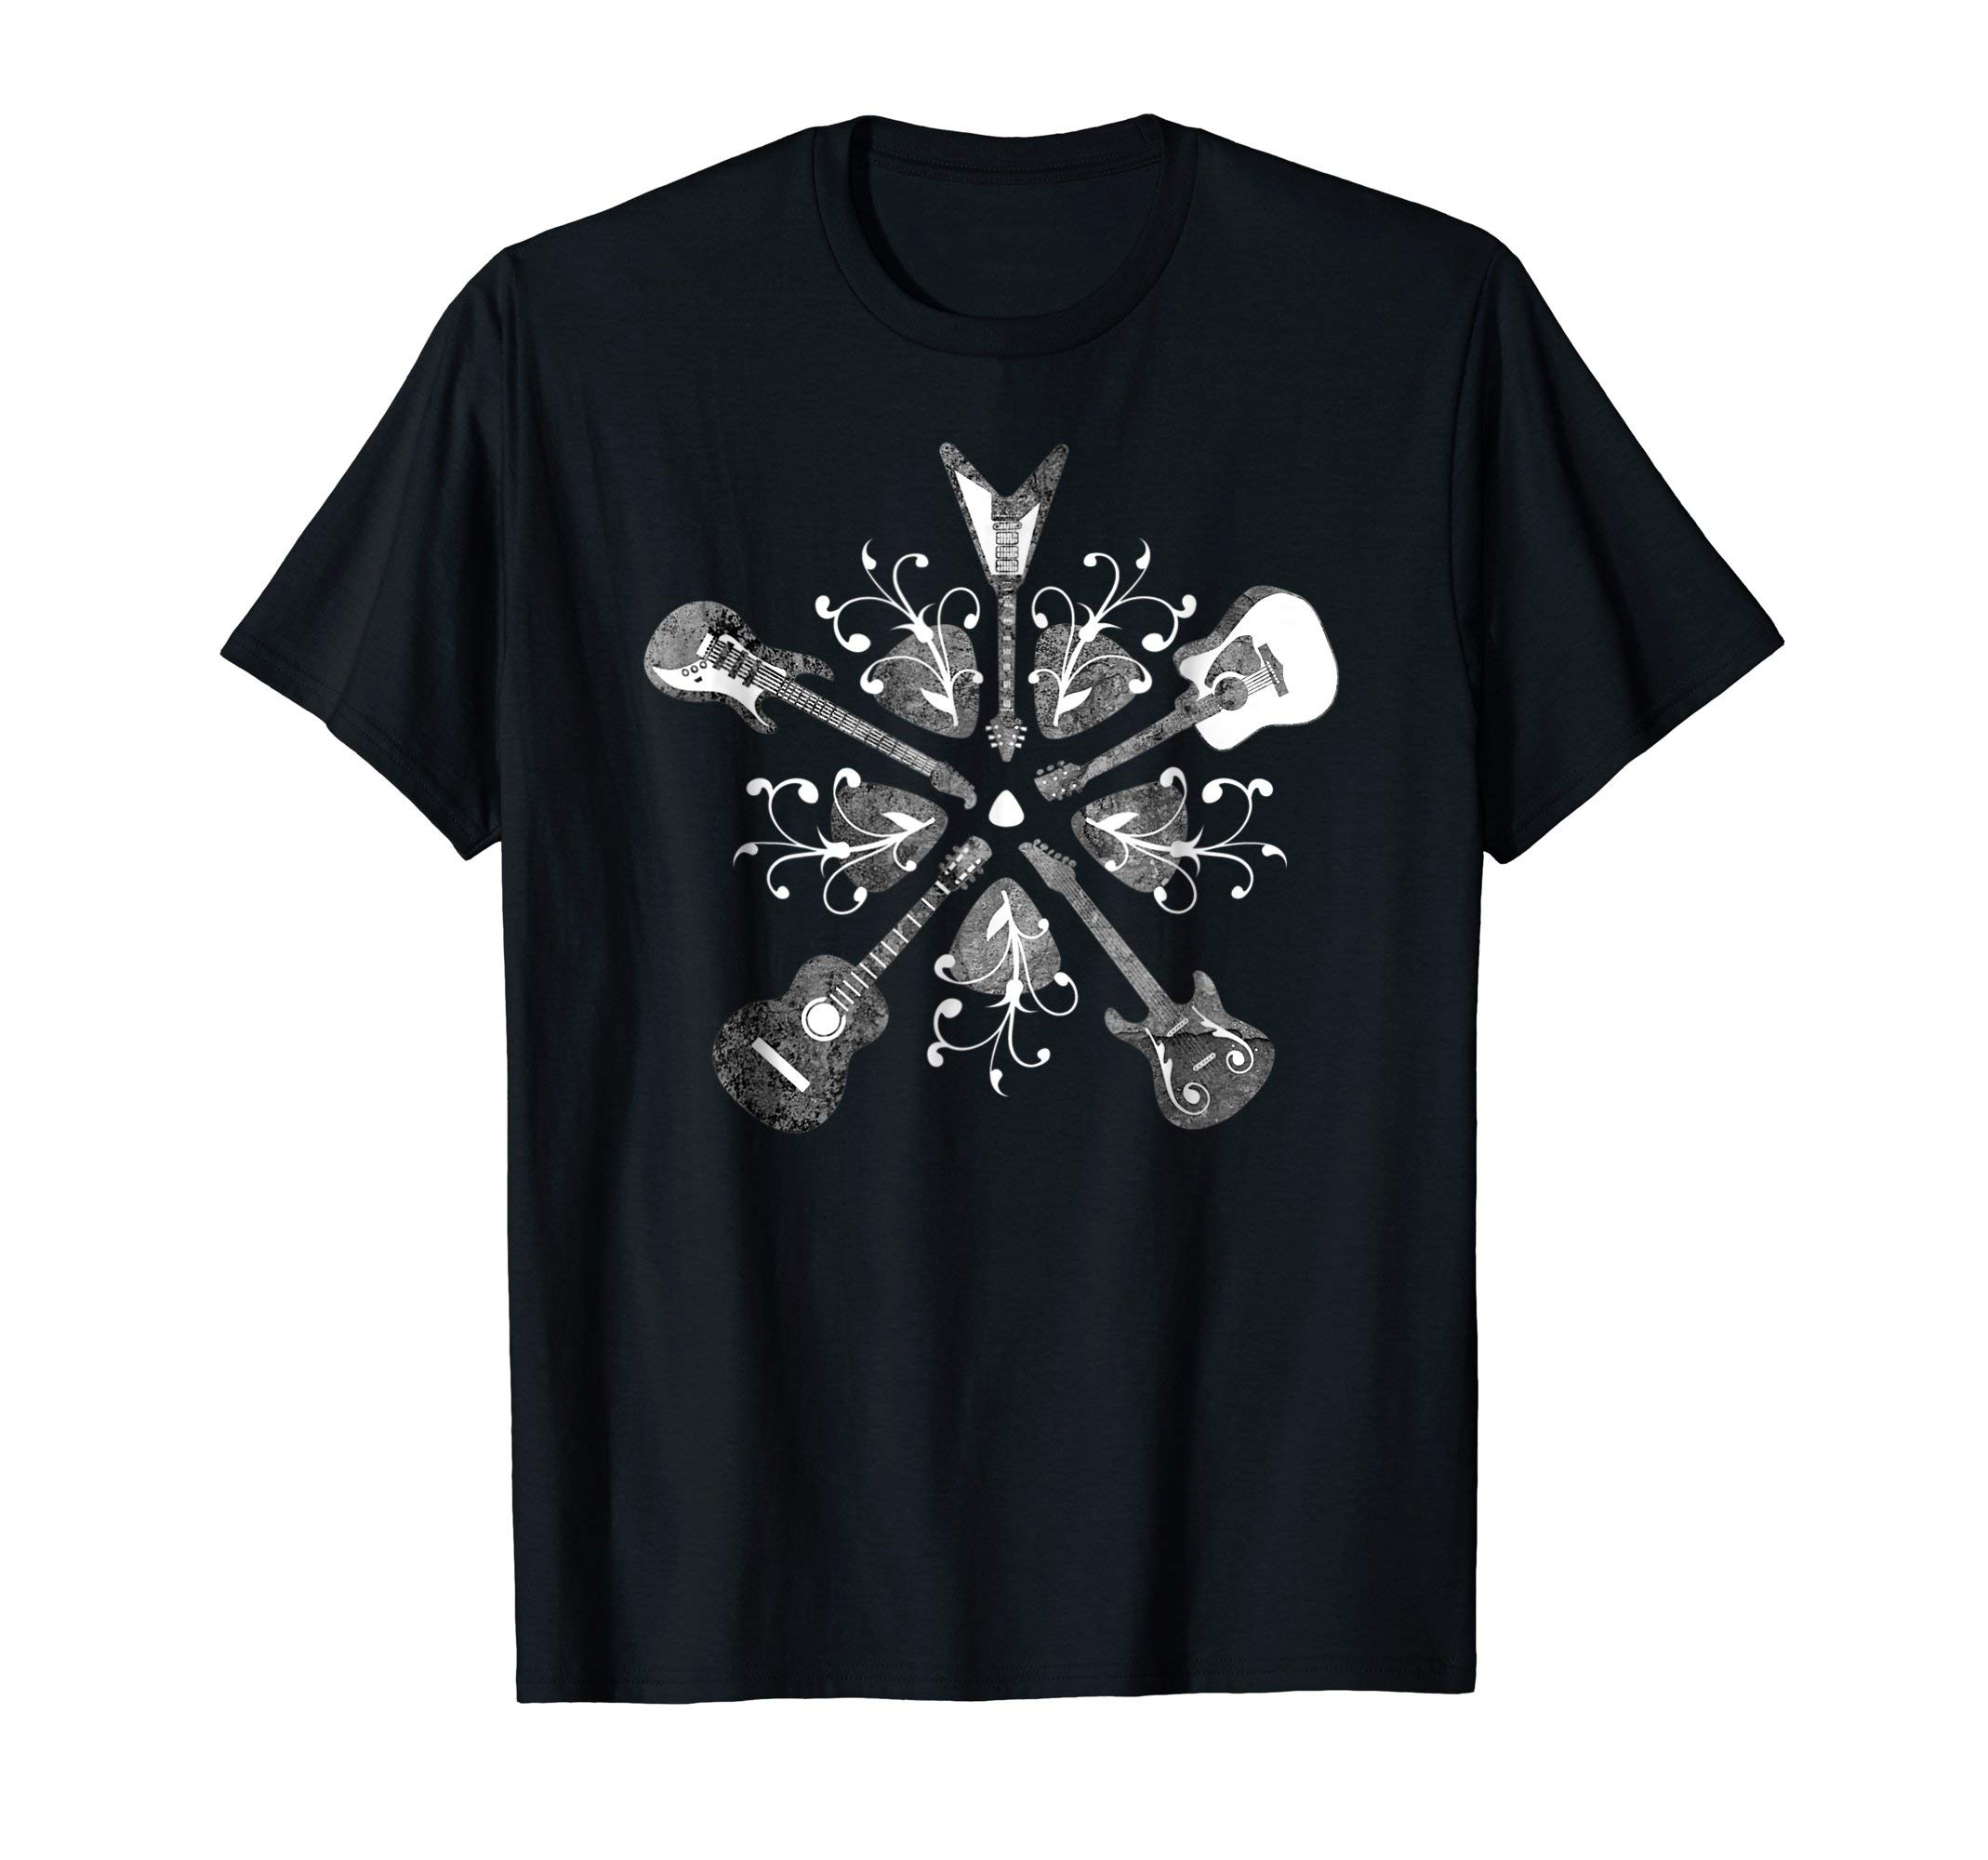 Guitar Shirt - Electric and Acoustic Guitars for Guitarists by Burke & Bunny Music Shirts & Gifts